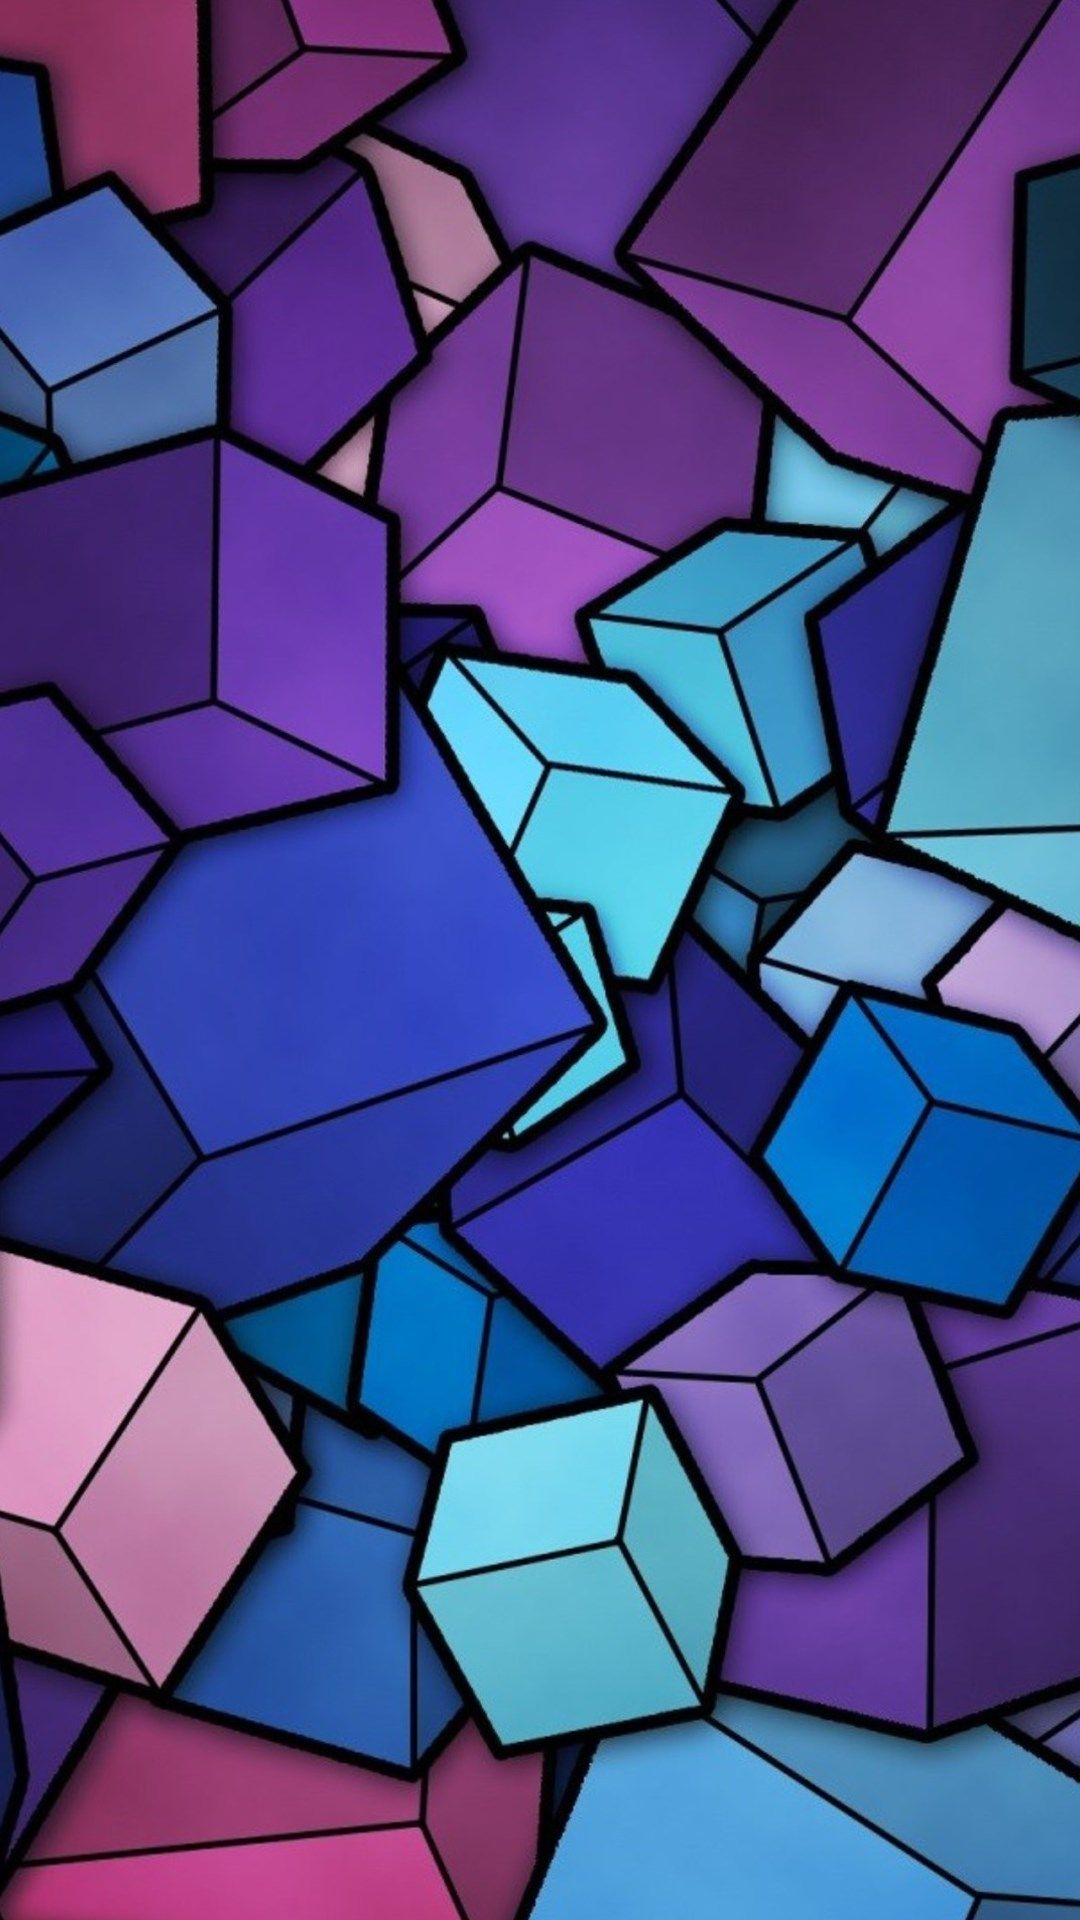 Wallpaper iphone violet - 60 Clever Abstract Iphone Wallpapers For Art Lovers